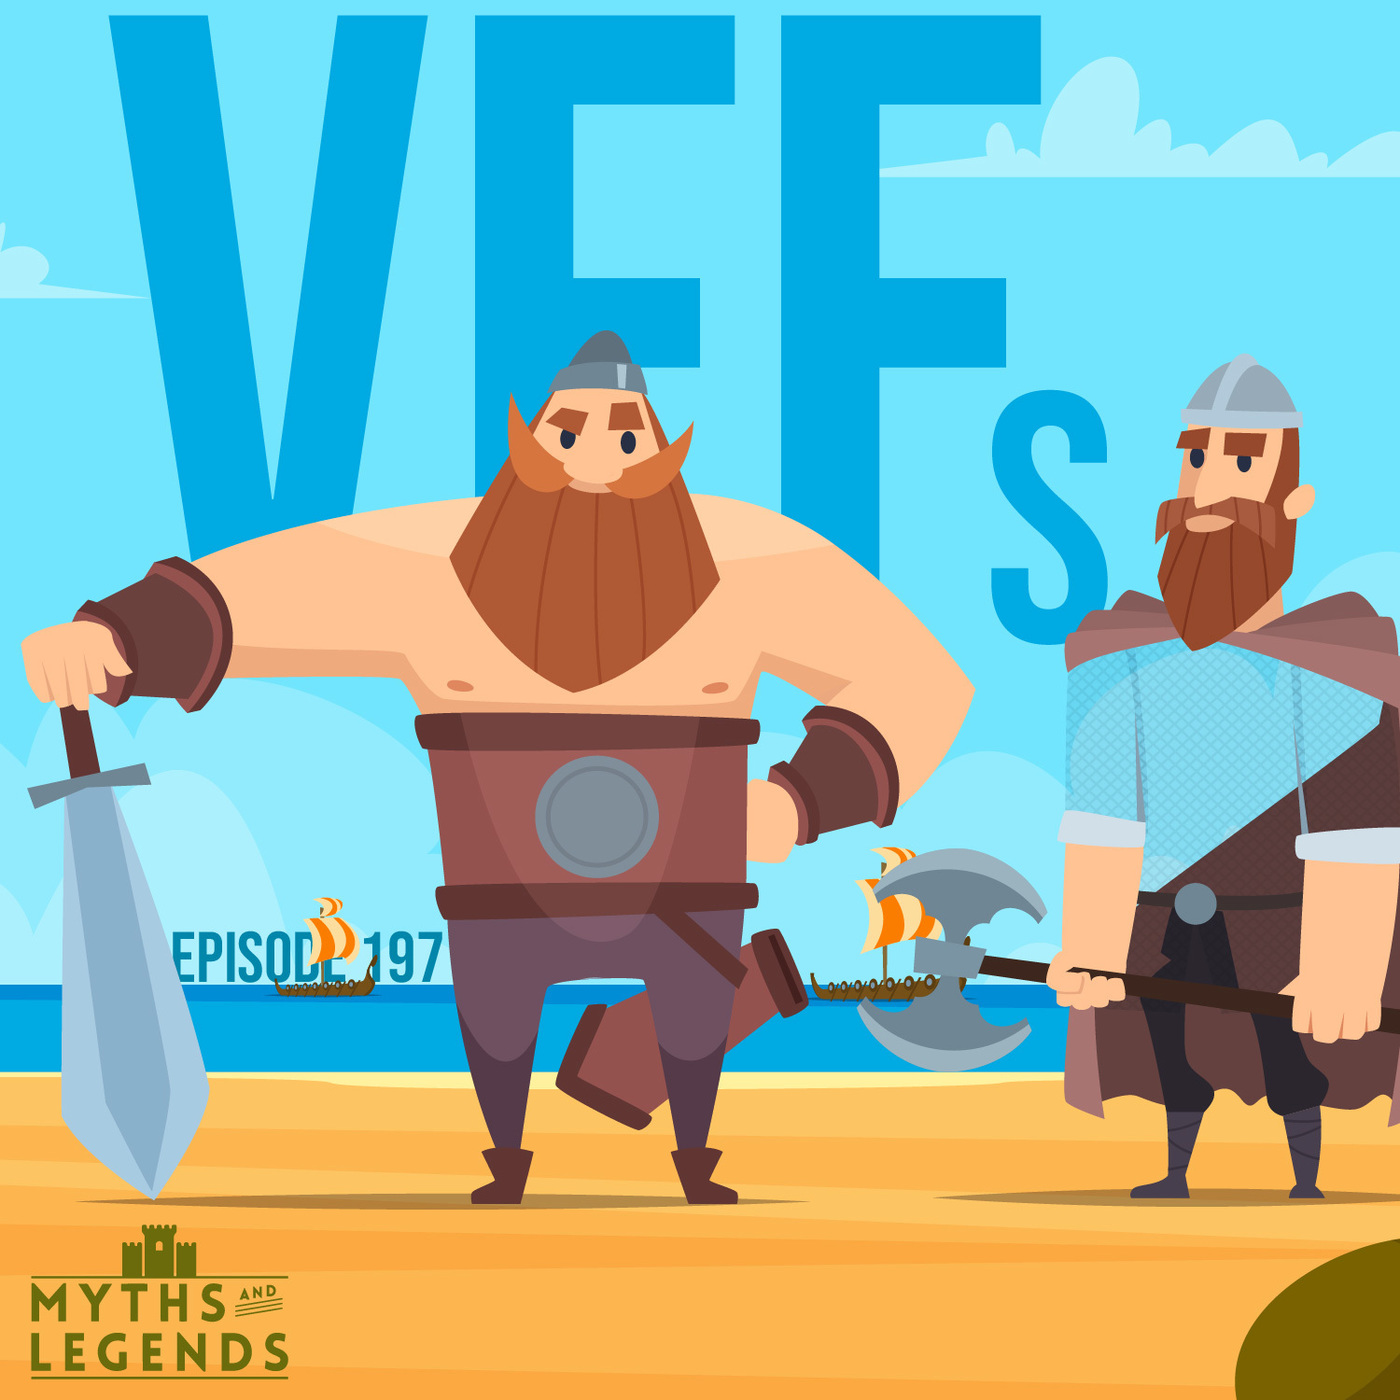 197-Viking Legends: VFFs